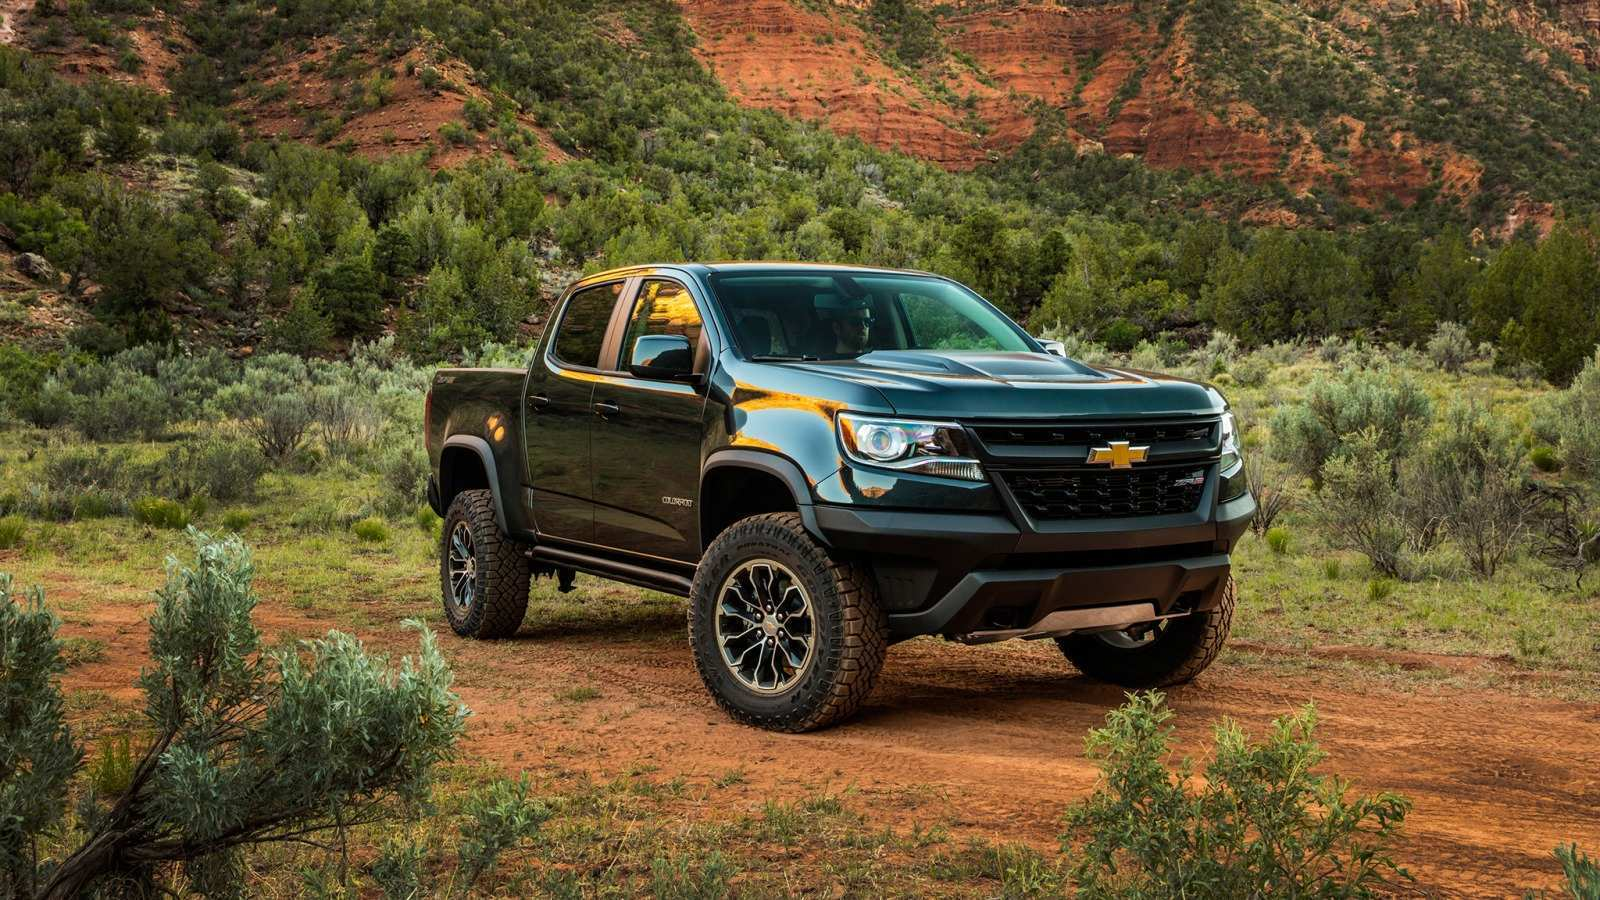 32 All New 2019 Chevrolet Colorado Update Price And Review Research New with 2019 Chevrolet Colorado Update Price And Review